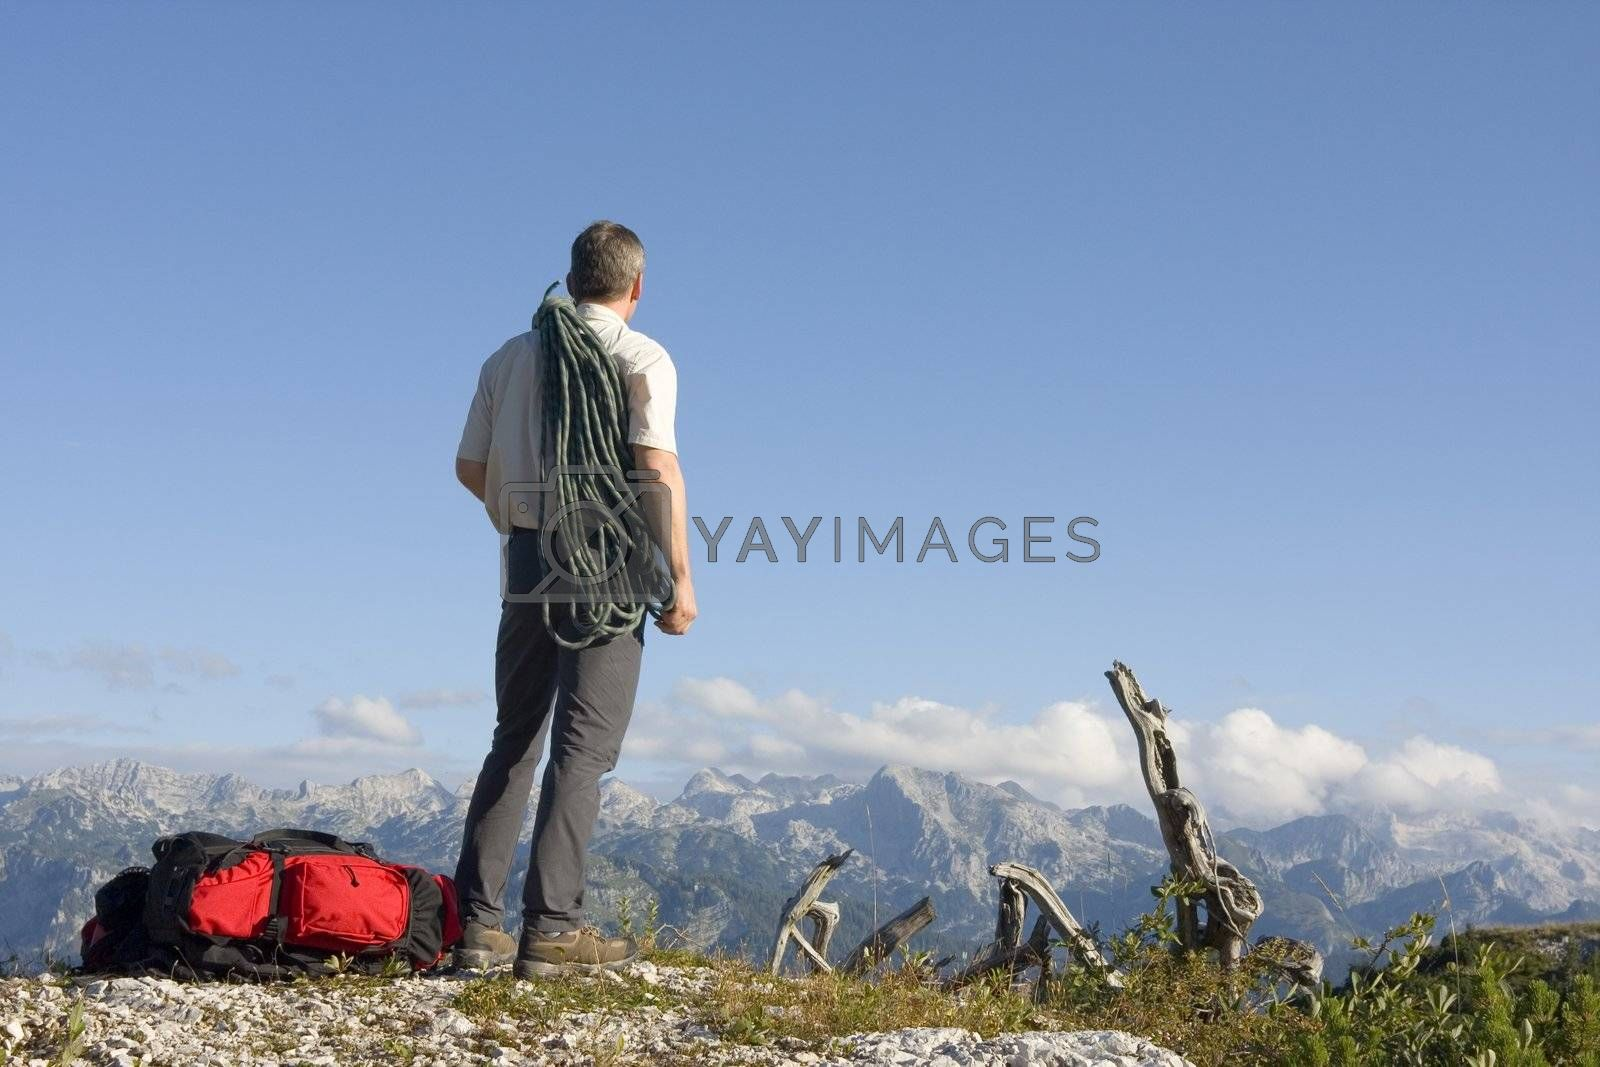 Mountaineer with rope on mountain peak contemplating the landscape